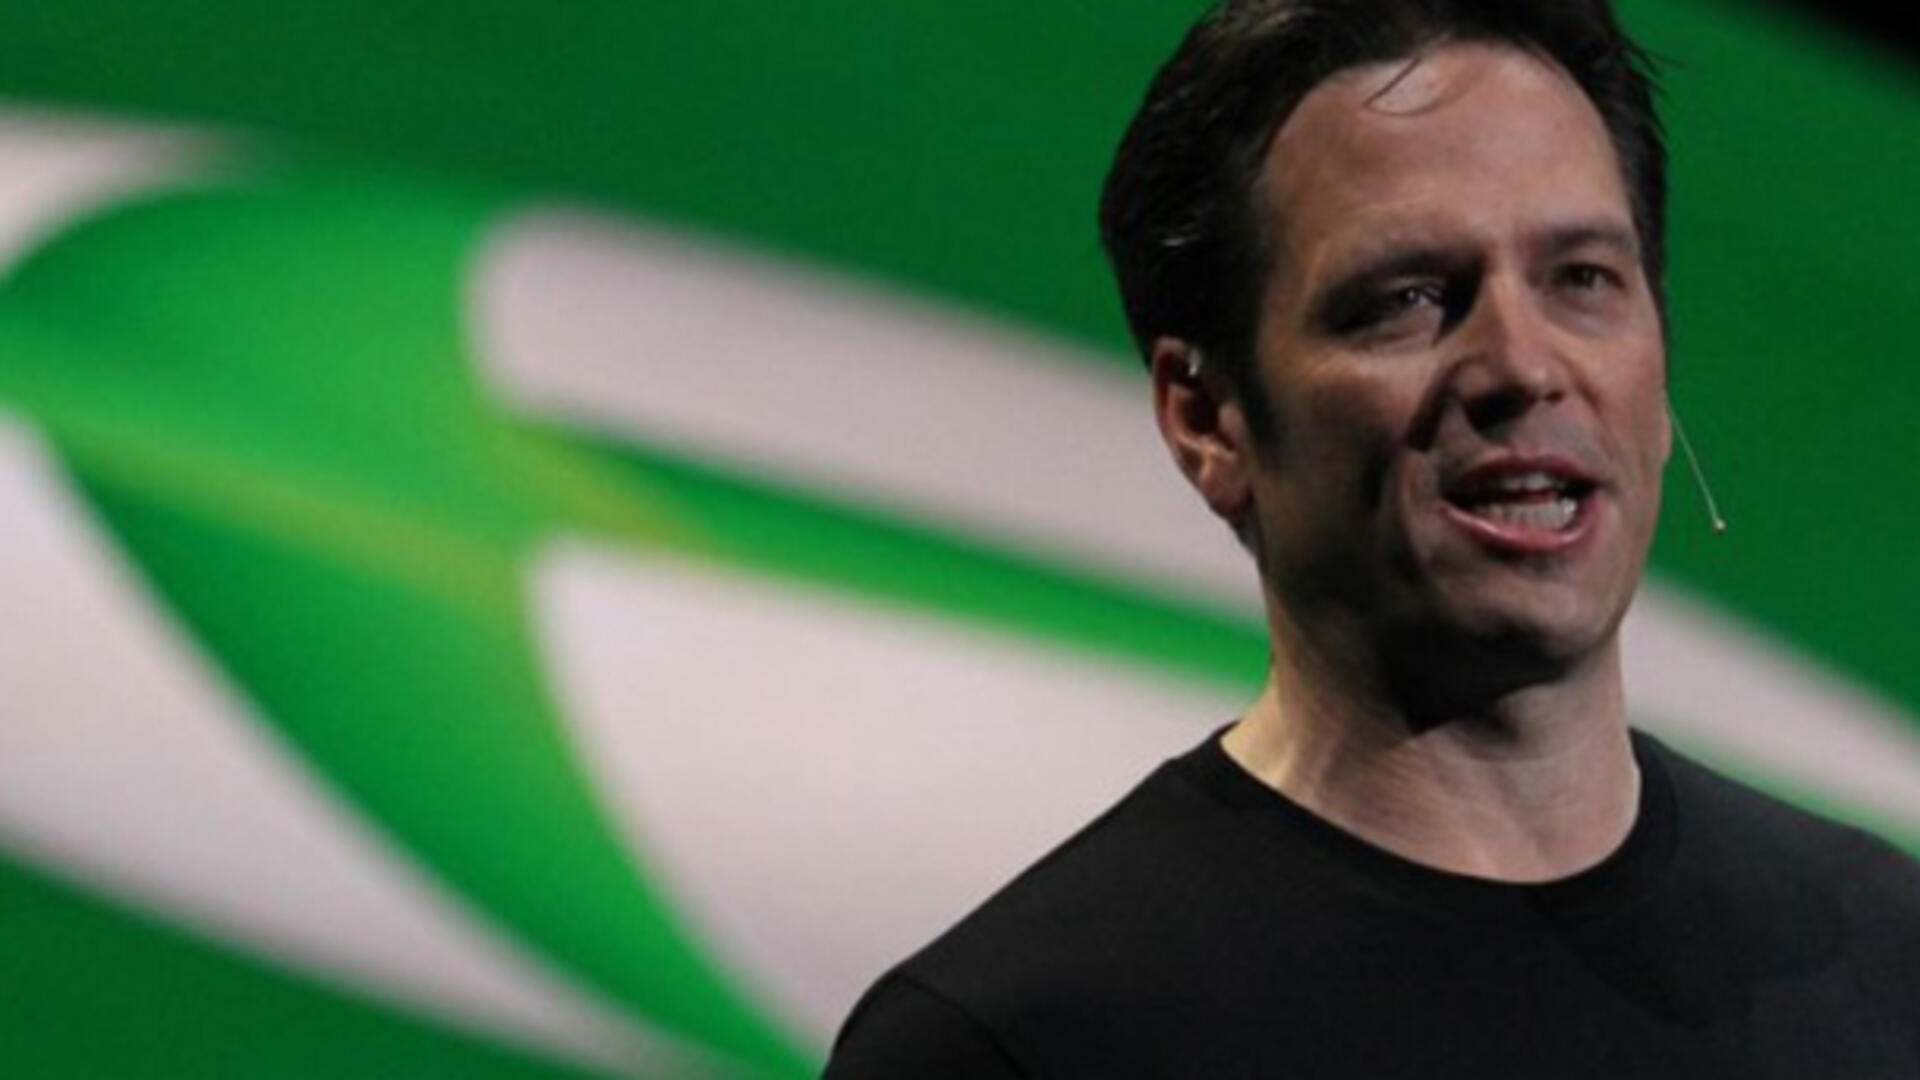 Xbox's Phil Spencer: Toxicity is a Threat to Our Entire Industry